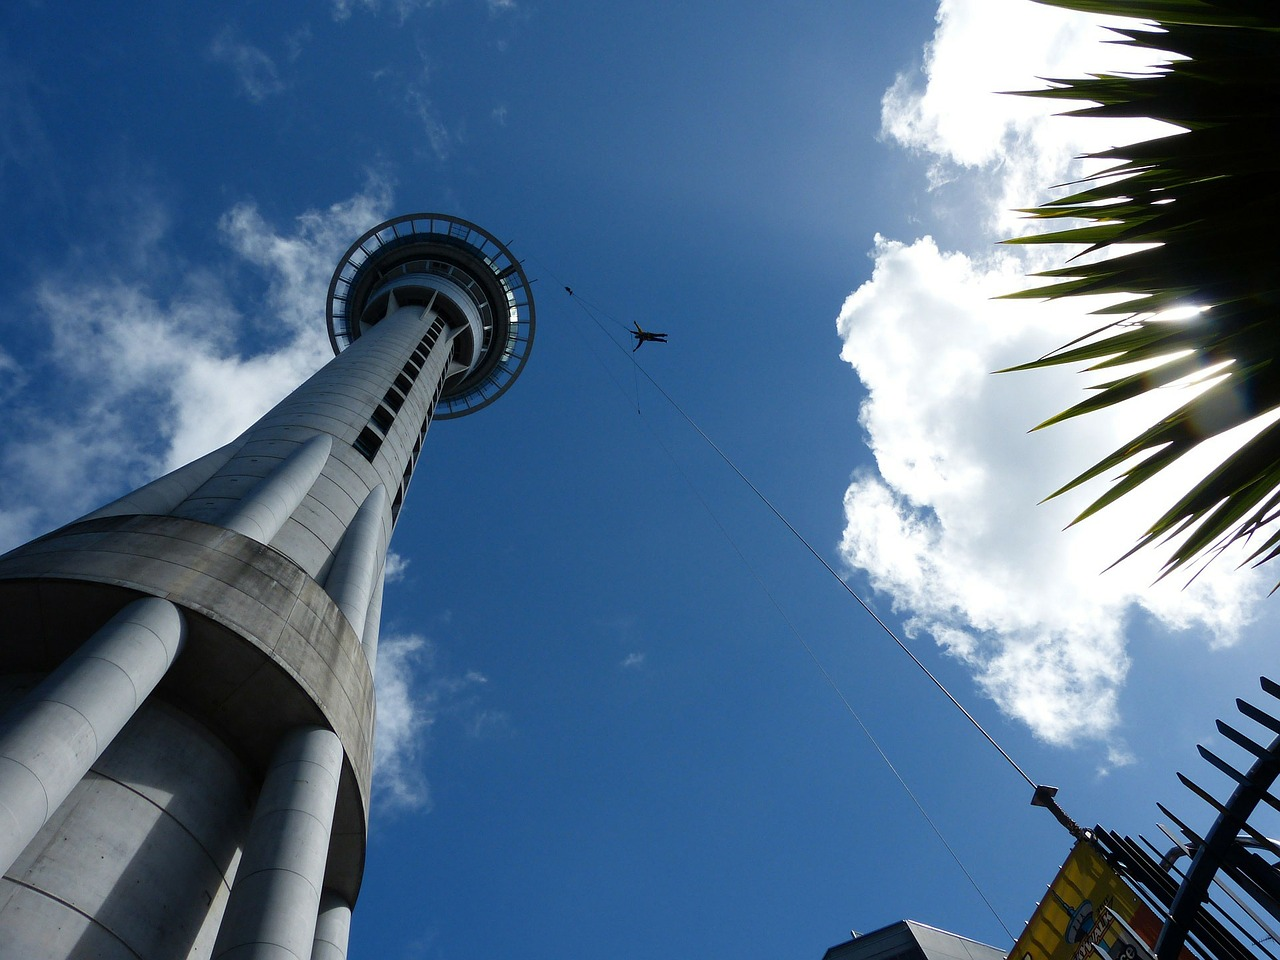 For adrenaline rush try jumping off the Sky Tower